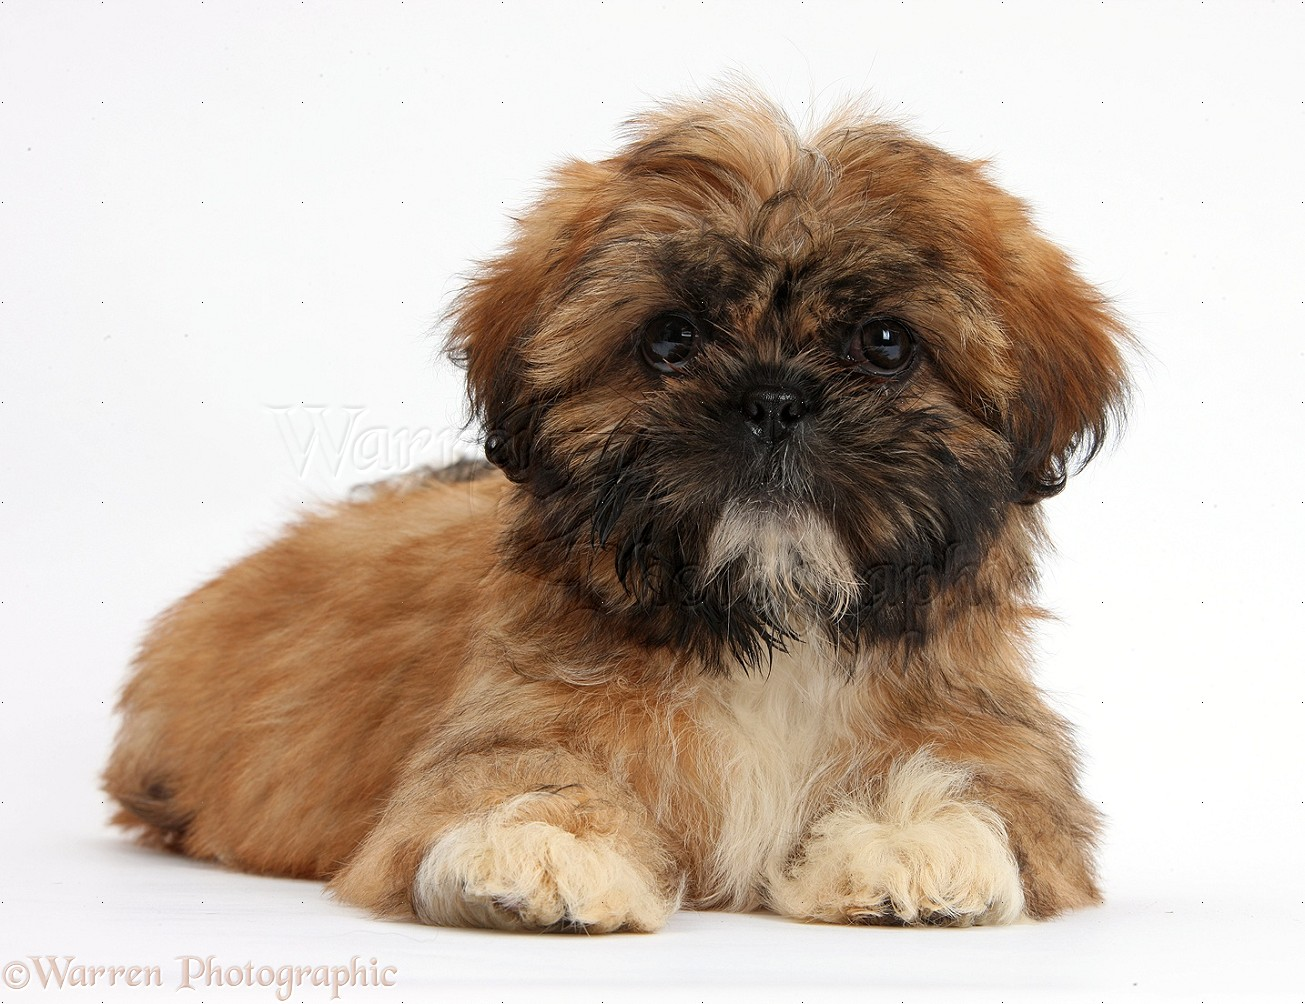 Dog Brown Shih Tzu Pup Lying With Head Up Photo Wp37965